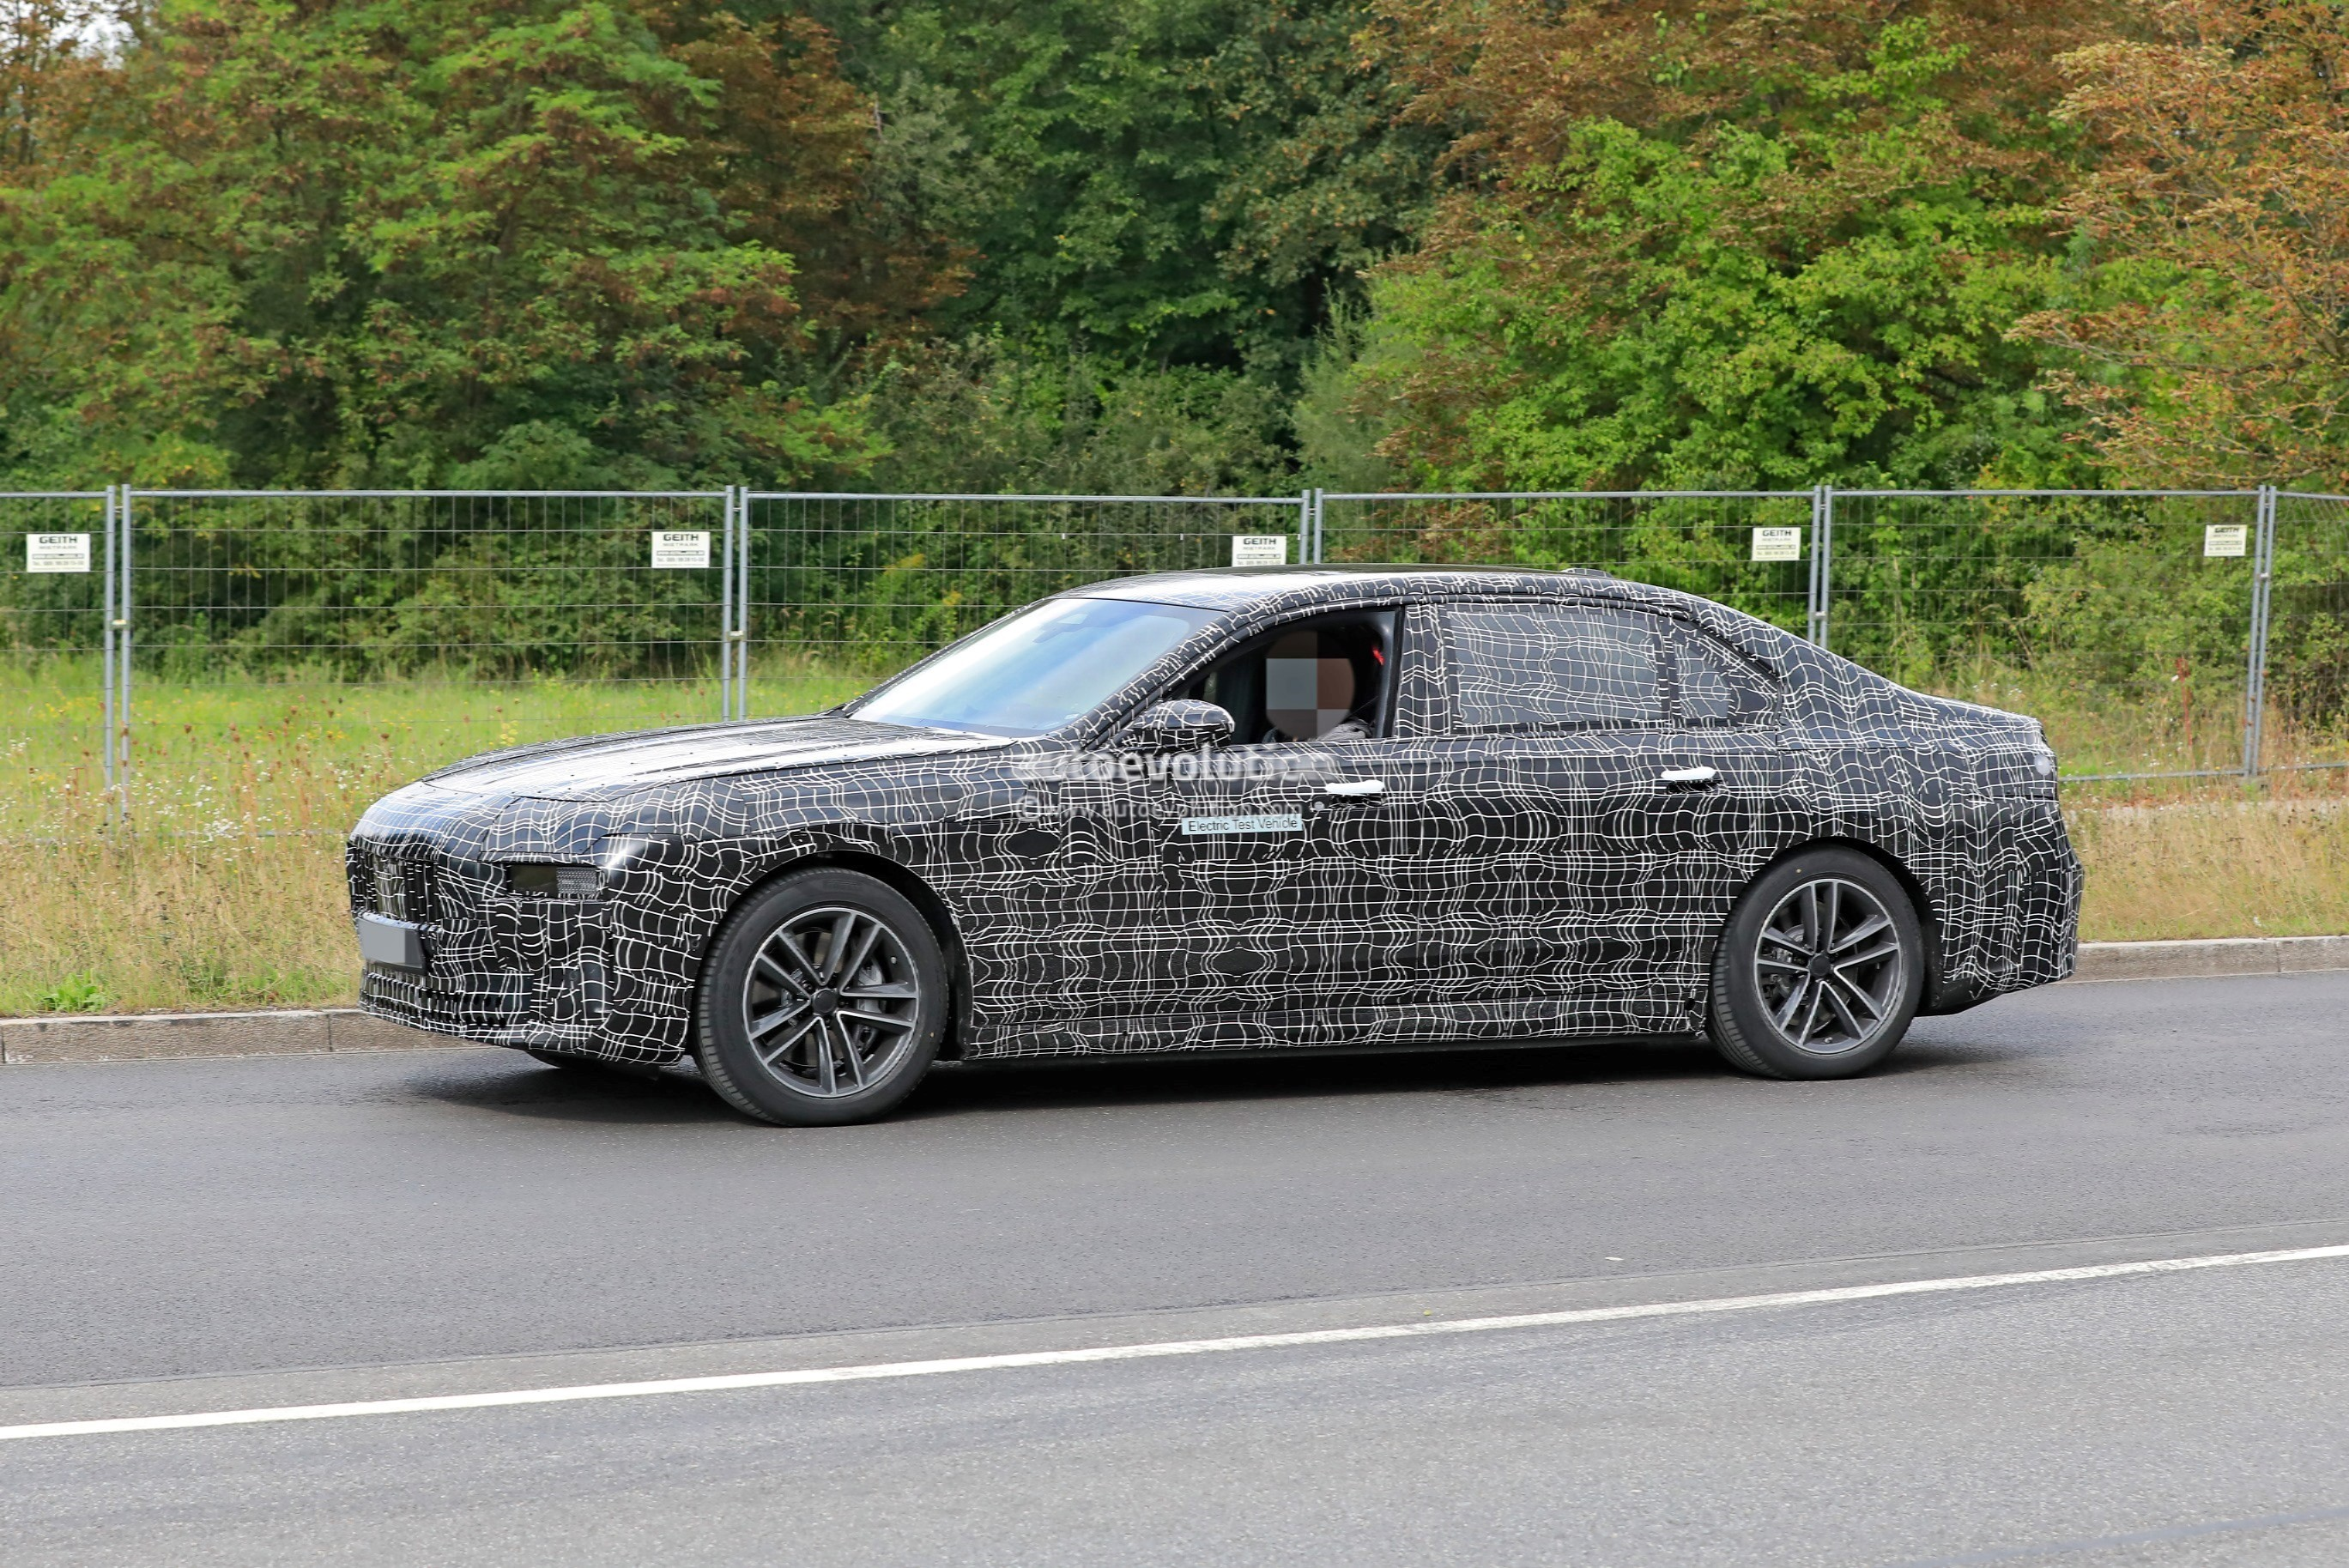 2022 bmw 7 series (g70) speculatively rendered with split